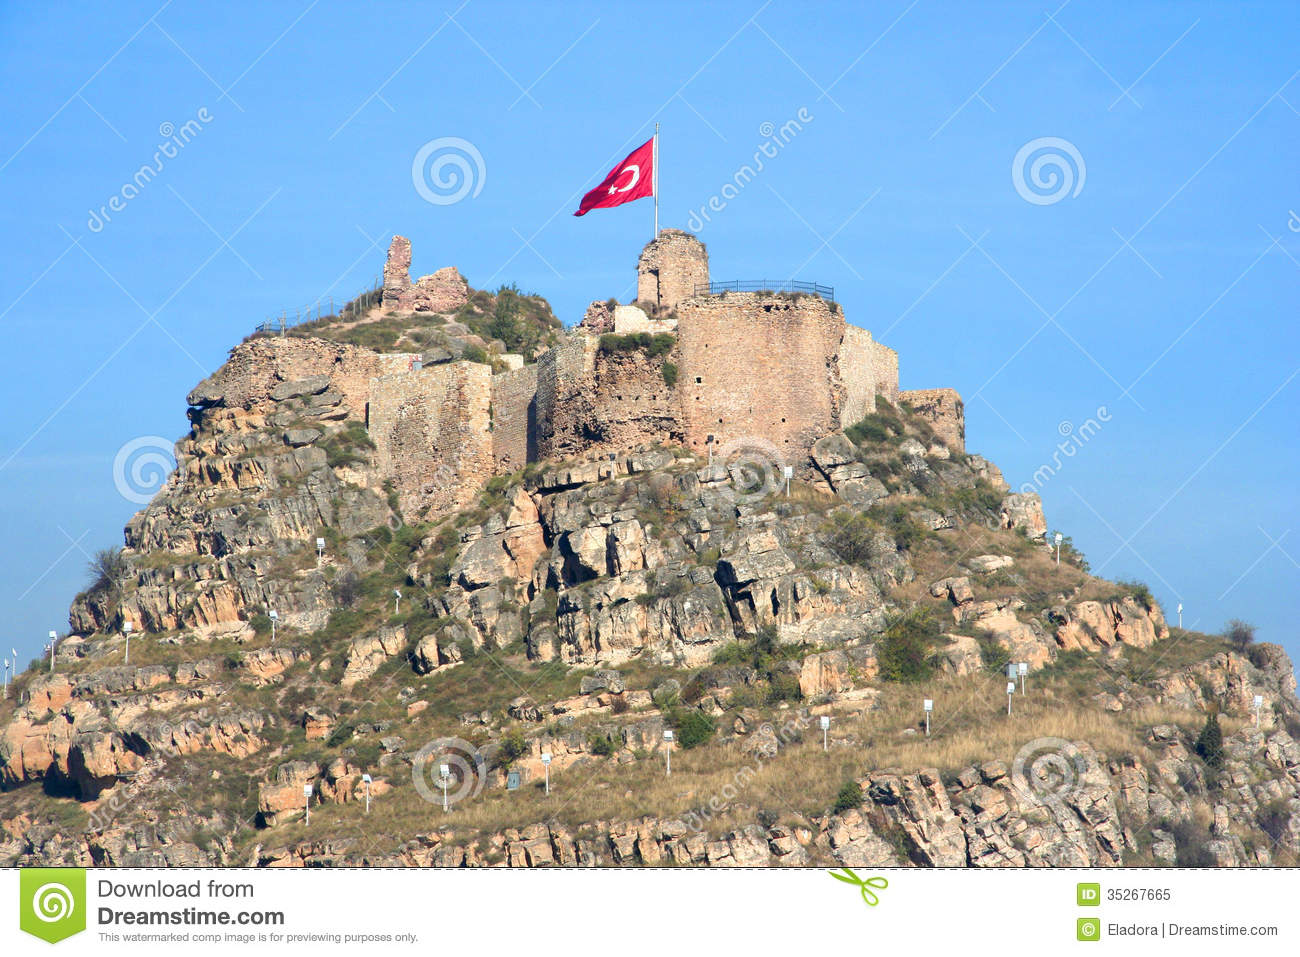 Kastamonu Castle Royalty Free Stock Photo - Image: 35267665